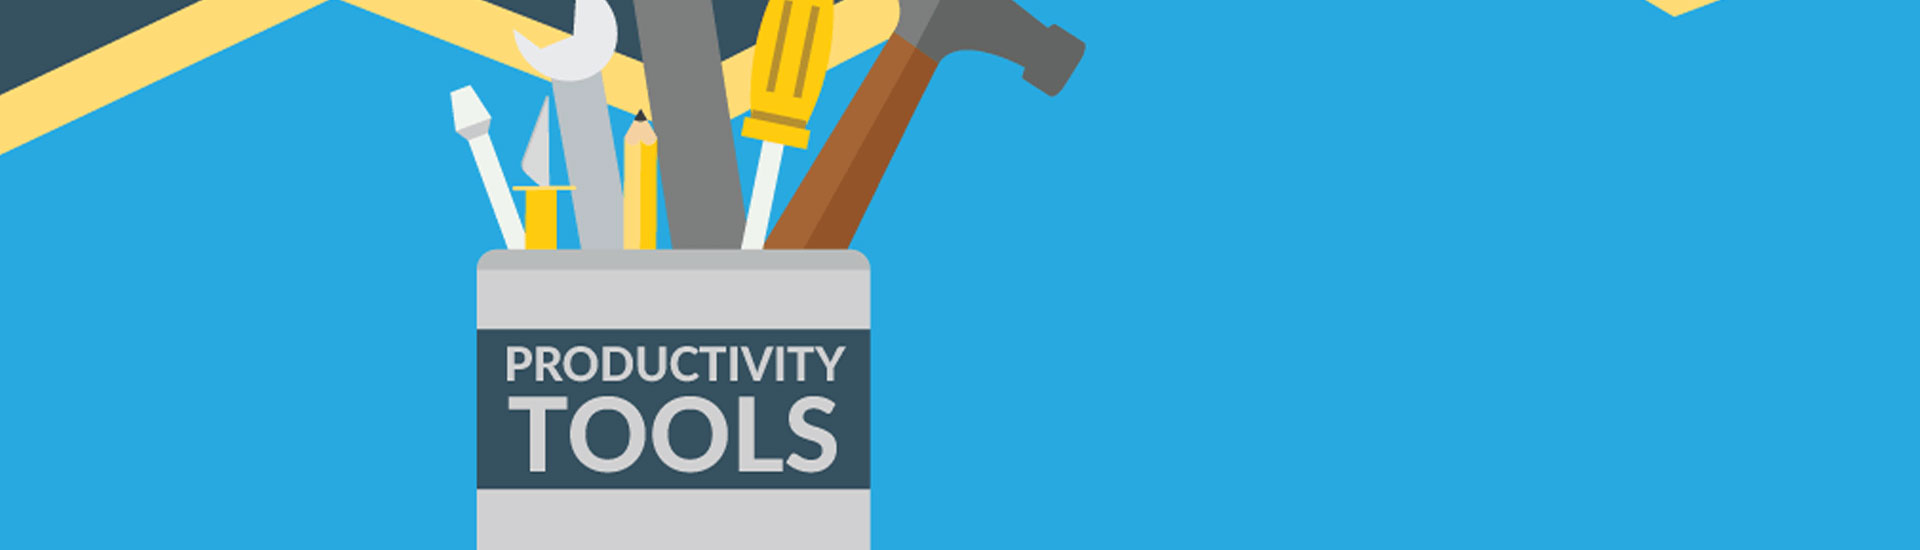 Productivity-Tools-Suggested-by-Axentys